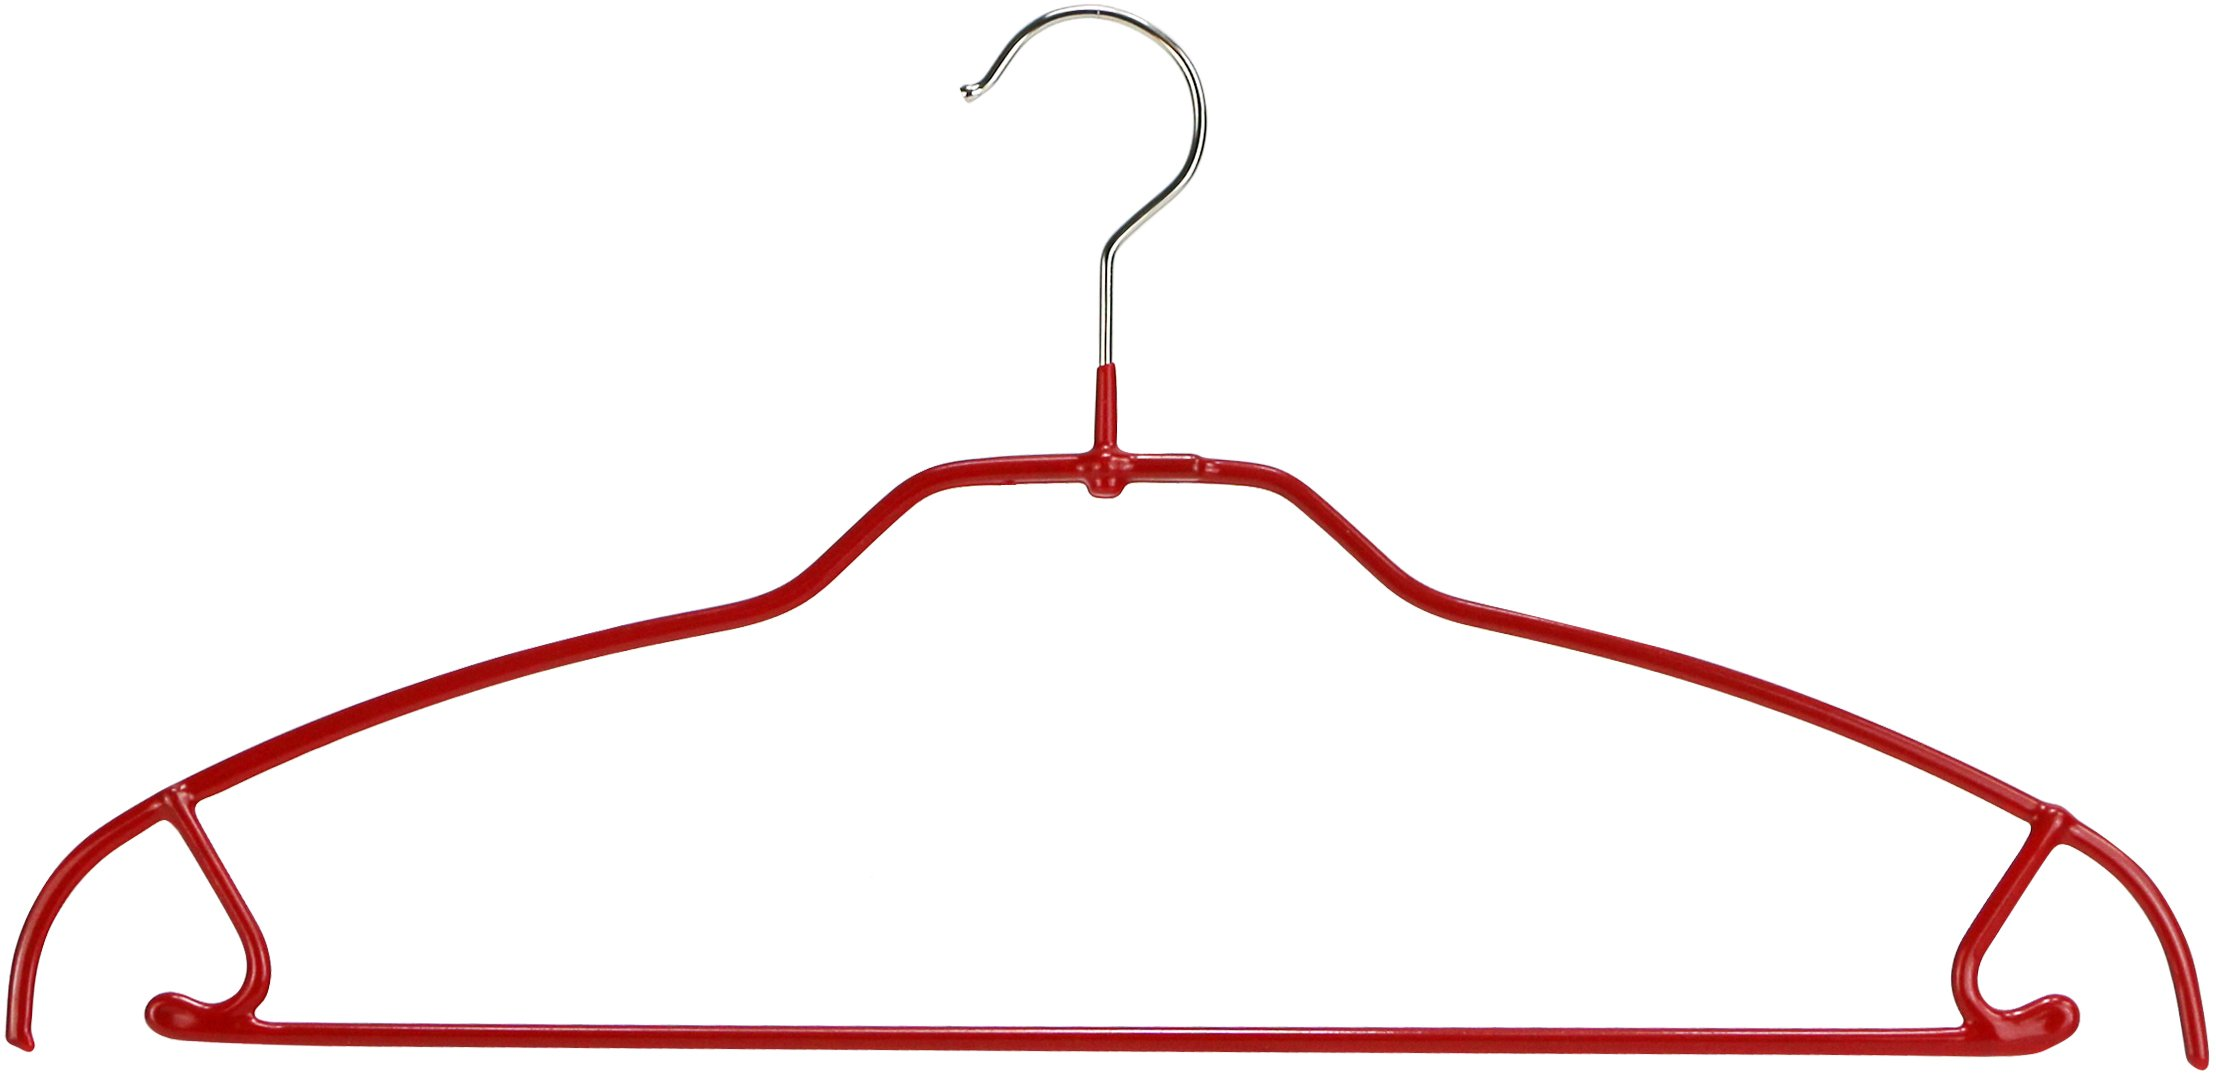 MAWA Space Saving Clothes Hanger with Bar and Hooks Style 42/FTU for Pants and Skirts, Pack of 10, Red, 10 Pack